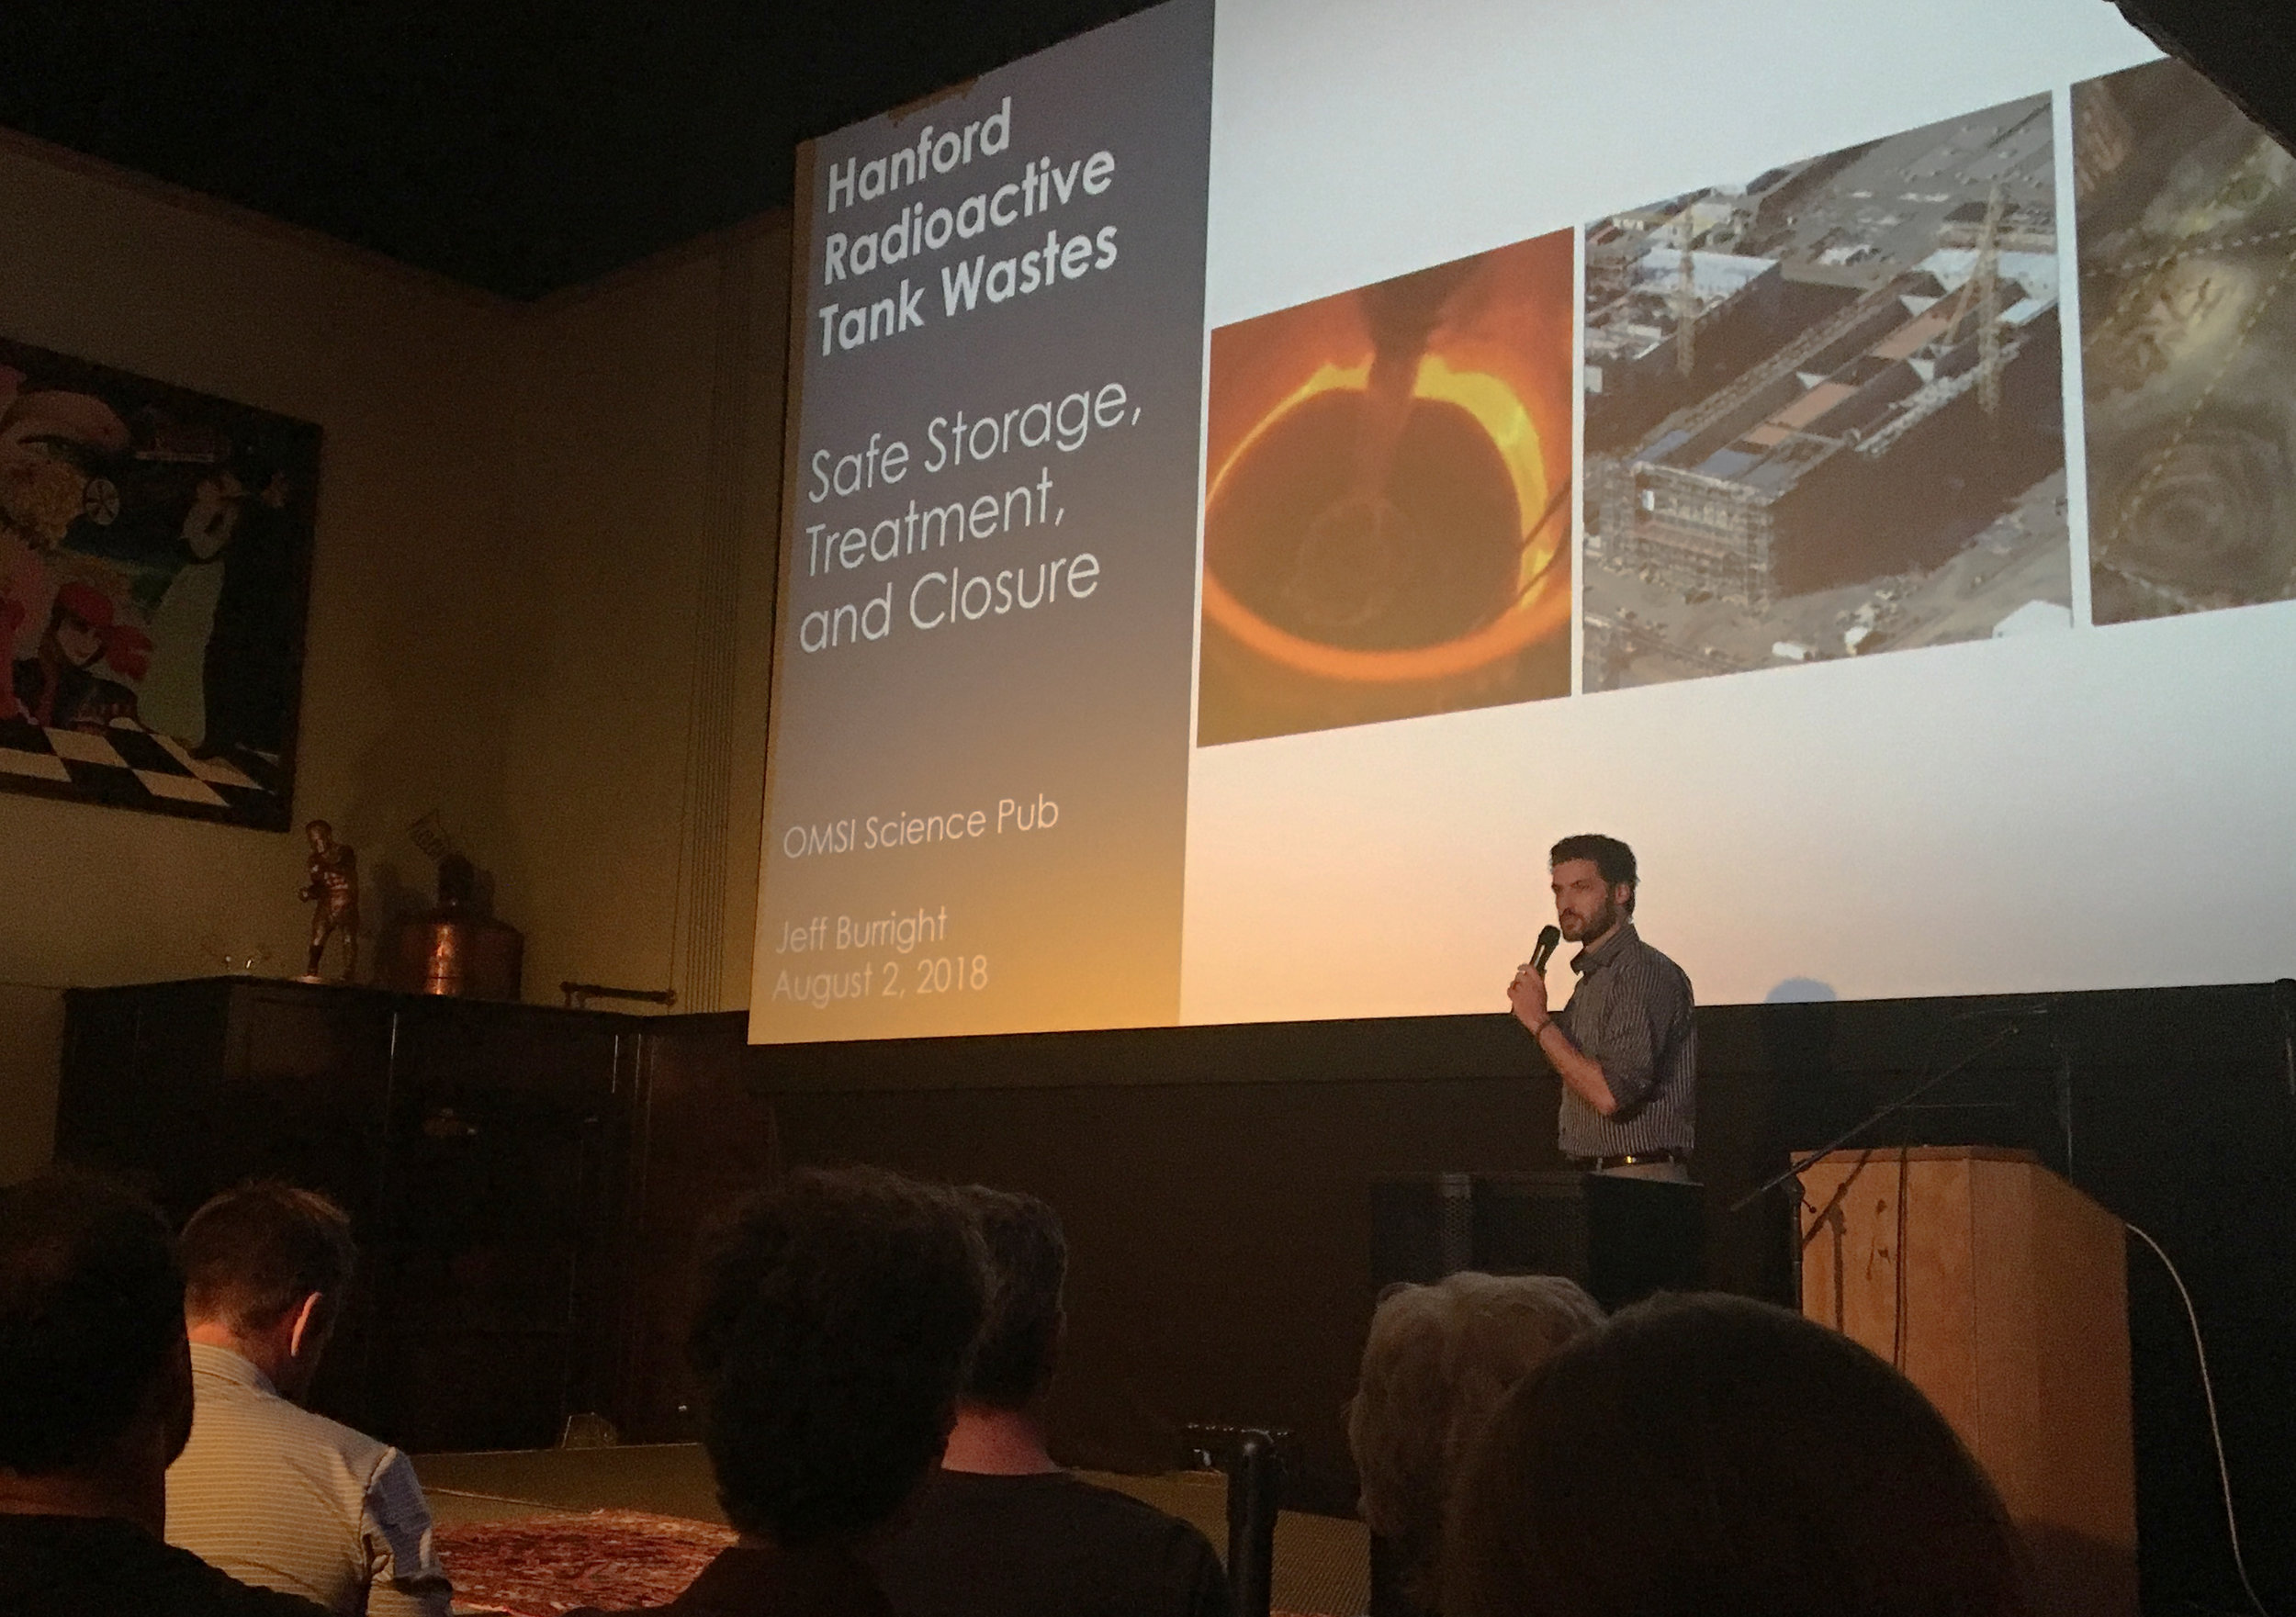 Our Jeff Burright talked about the Hanford nuclear cleanup at a recent OMSI Science Pub in  Portland .